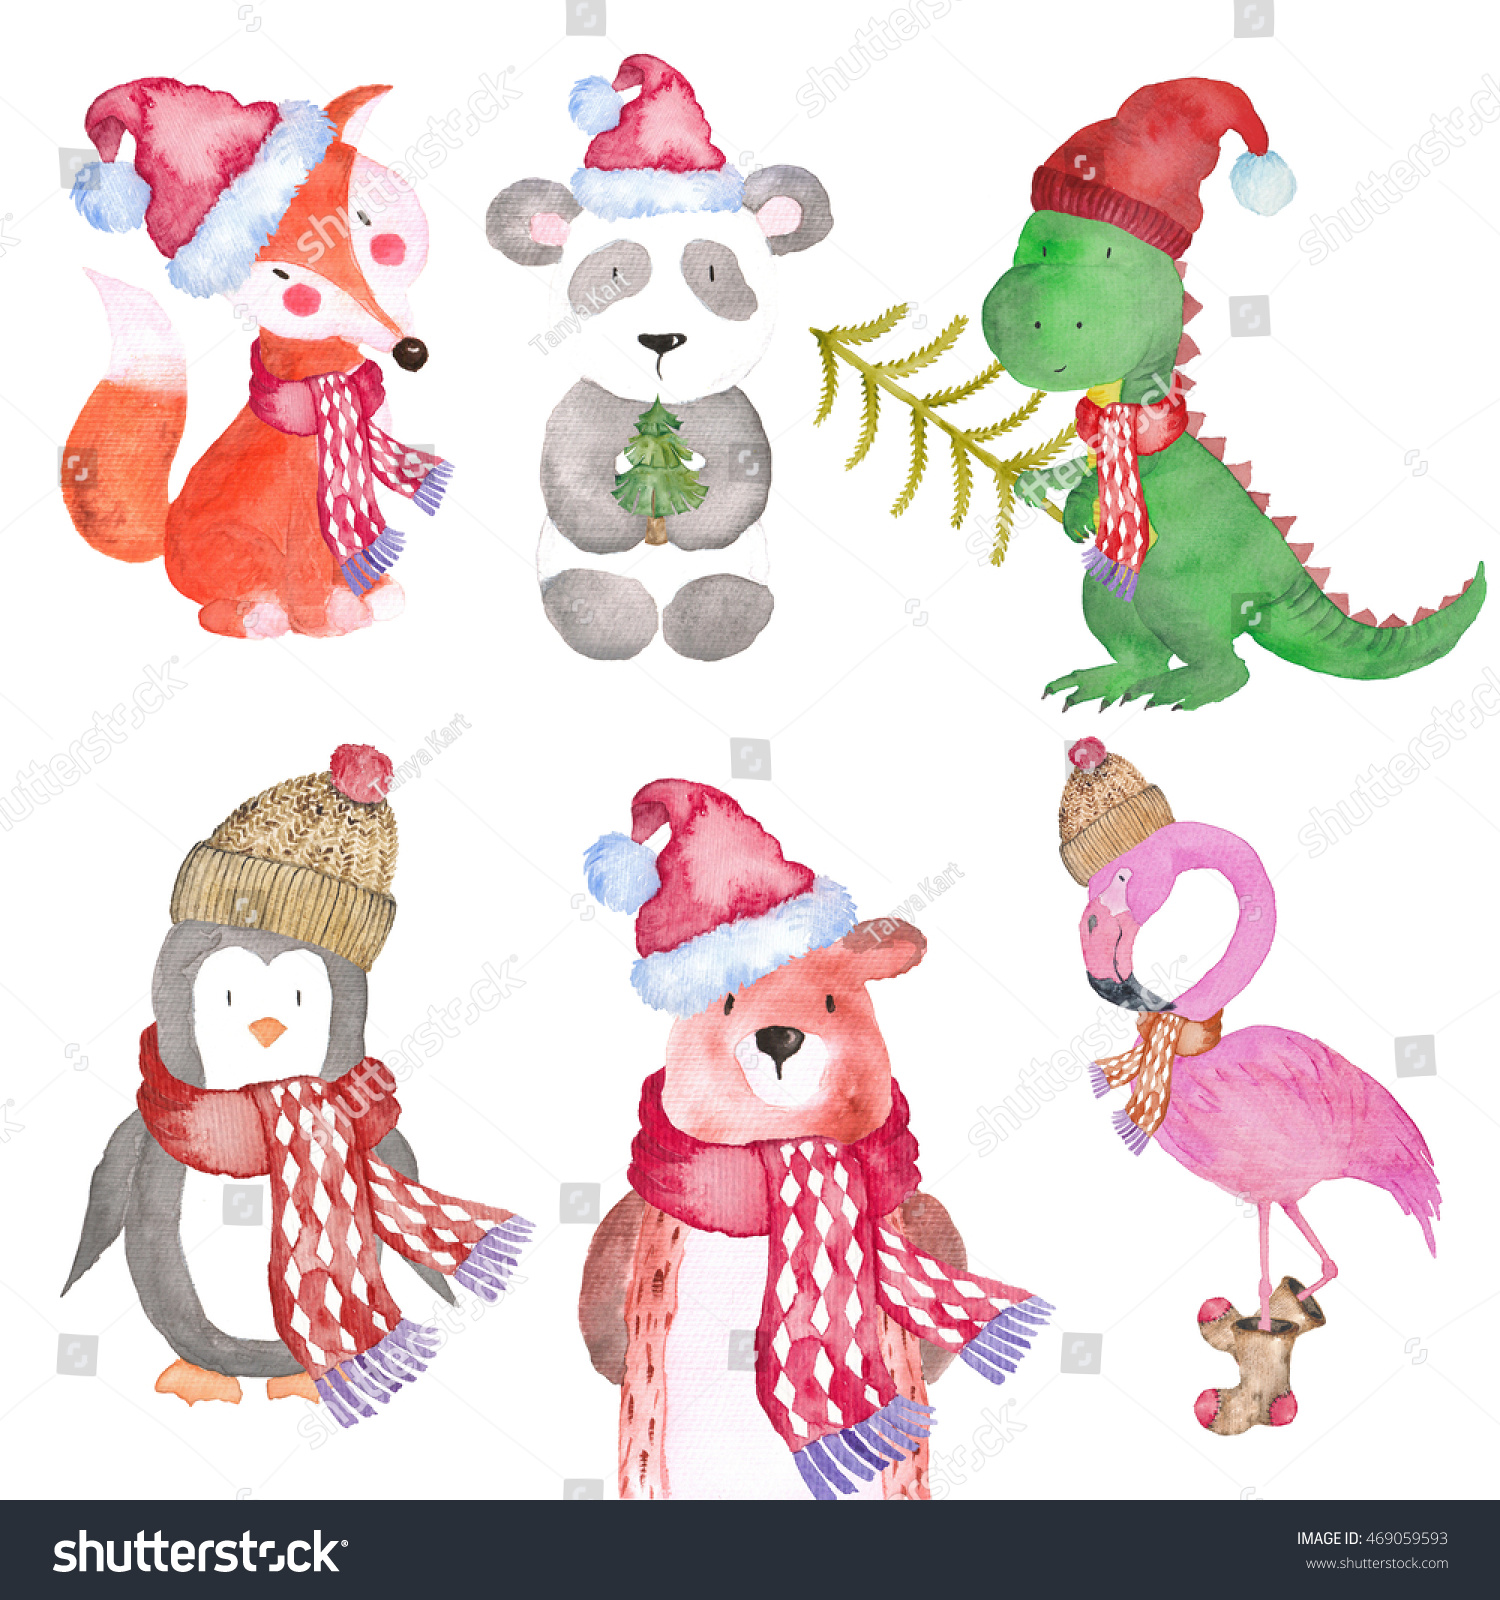 Fox with a hat new year or christmas animal isolated on white - Christmas Winter Animals Fox Penguin Dinosaur Bear Panda Flamingo Watercolor Hand Painting Illustrations Woodland Seasonal Holiday